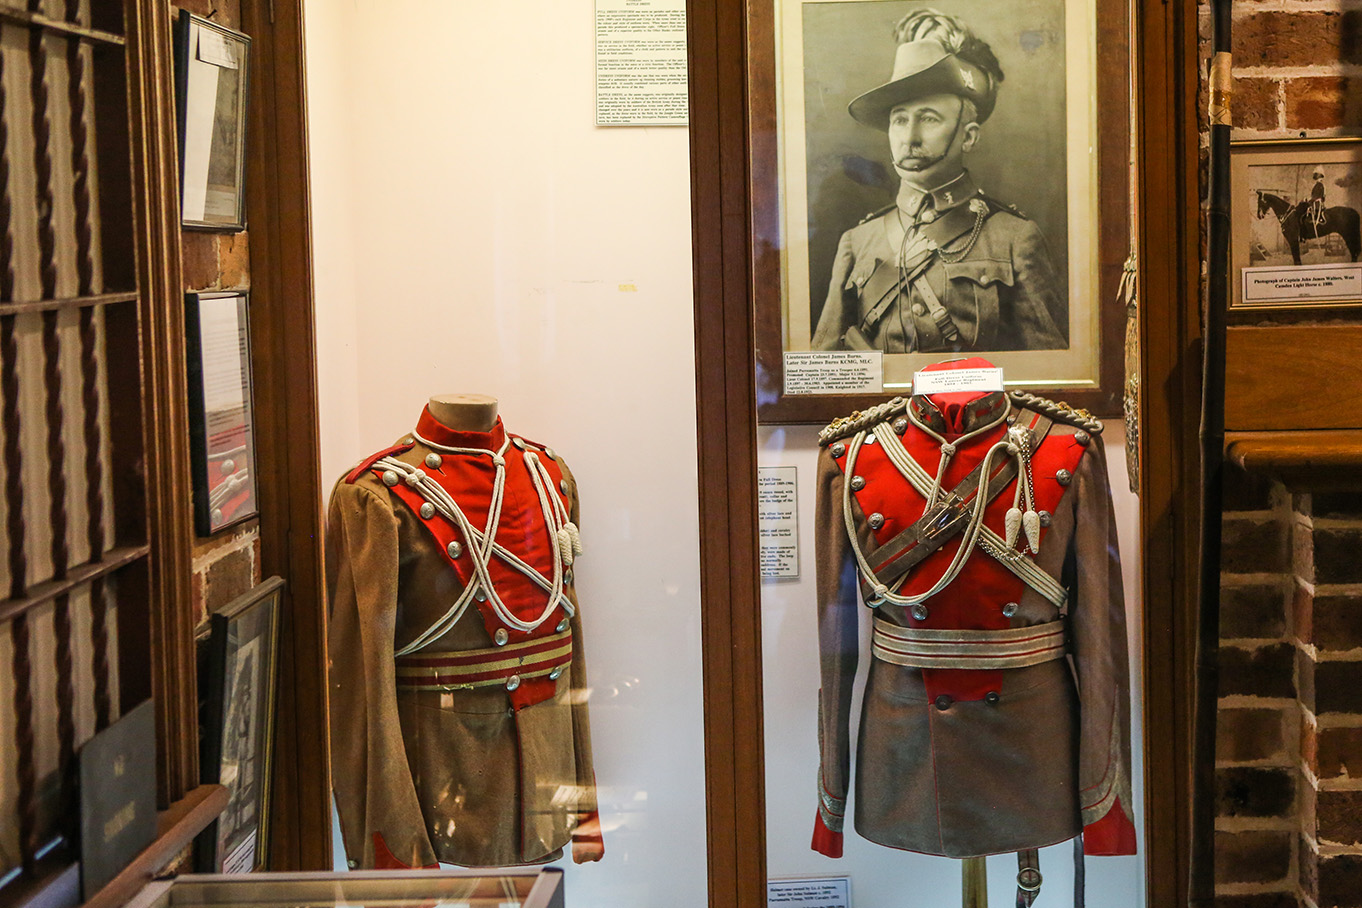 Lancer Barracks uniforms